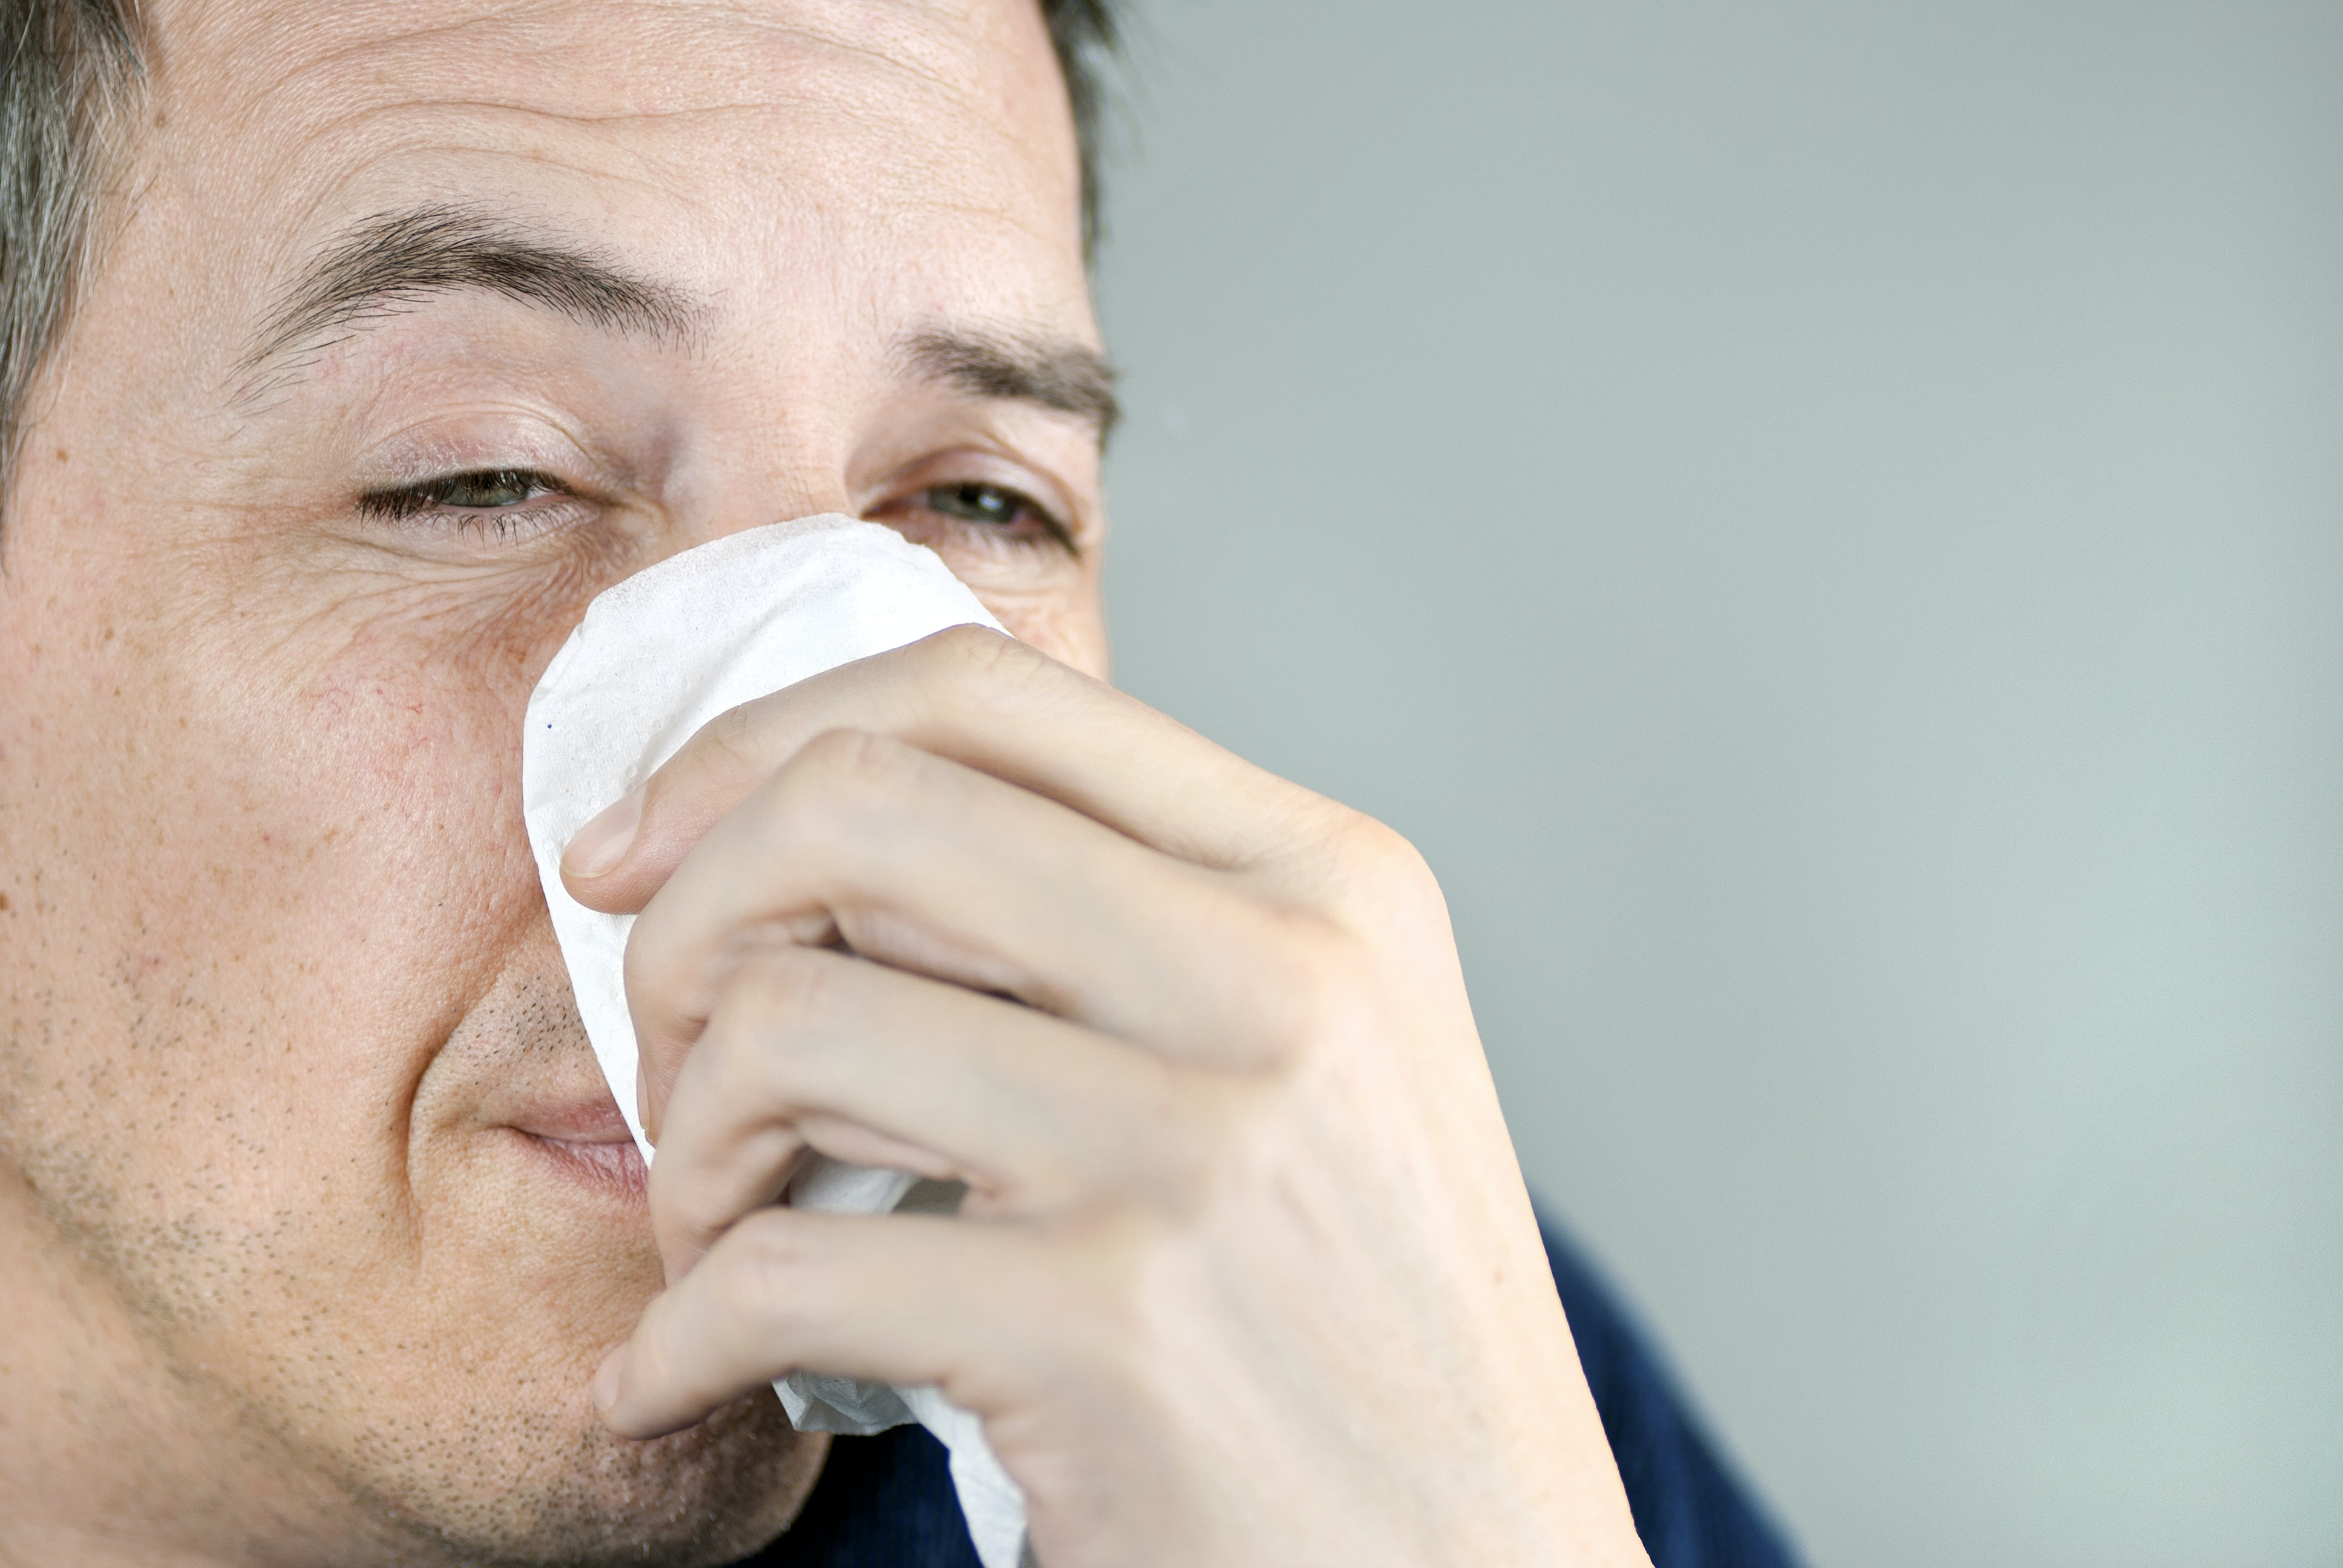 An image depicting a person suffering from nasal ulcer symptoms